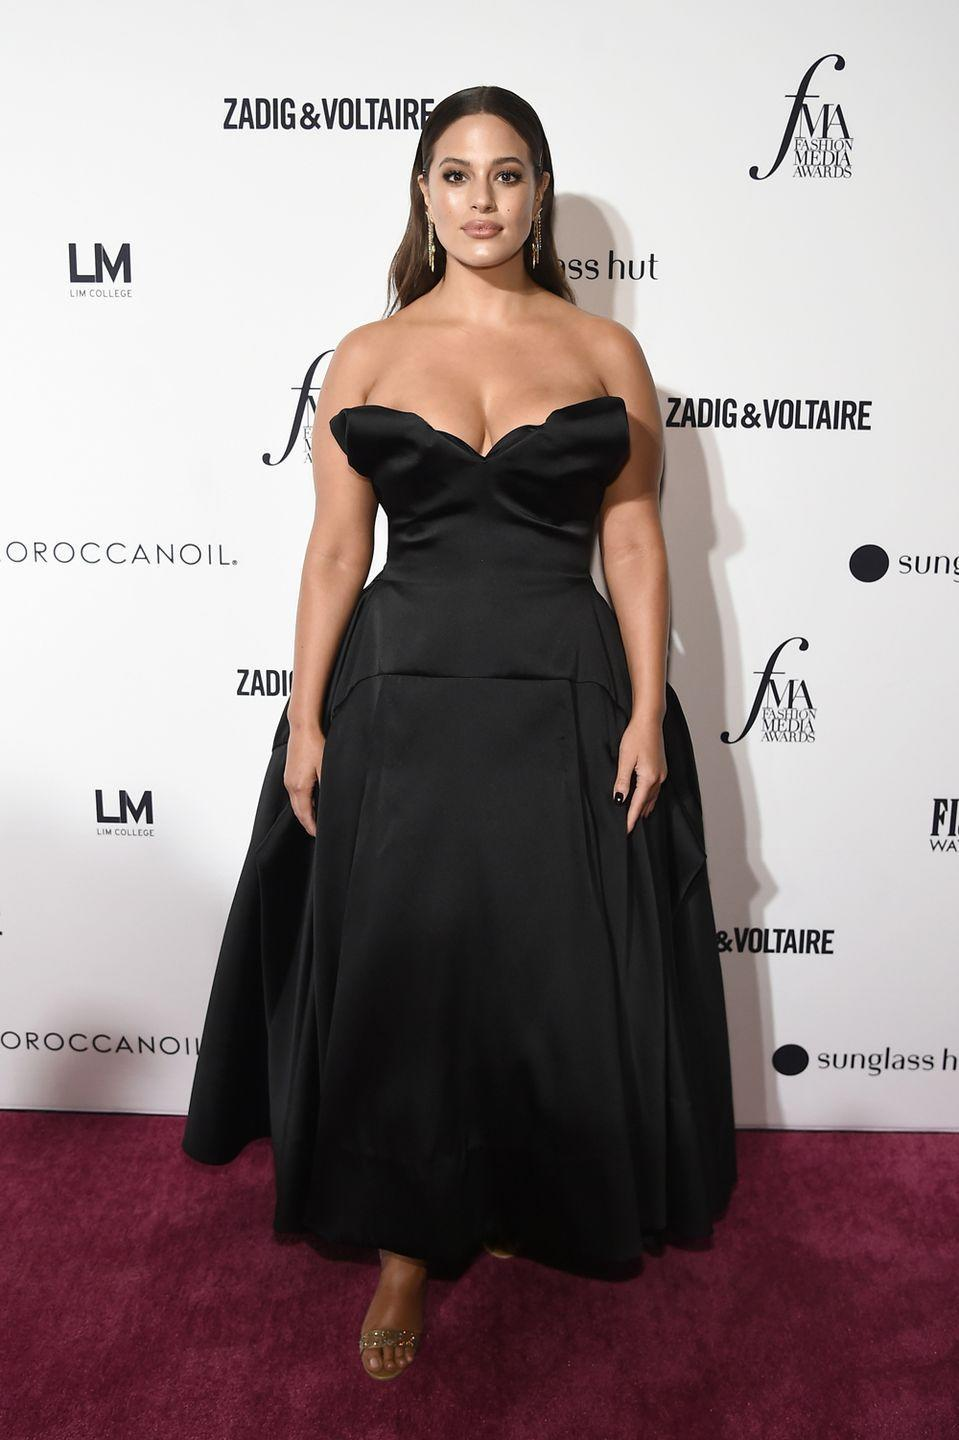 <p>Attending the 6th annual fashion media awards in NYC: Arriving at the fashion media awards in New York, Ashley wowed us with her structured black corset dress. Showcasing just one (or should that be two), of her greatest assets, Ashley paired the dramatic dress with slicked back hair and a good ole smoky eye.</p>